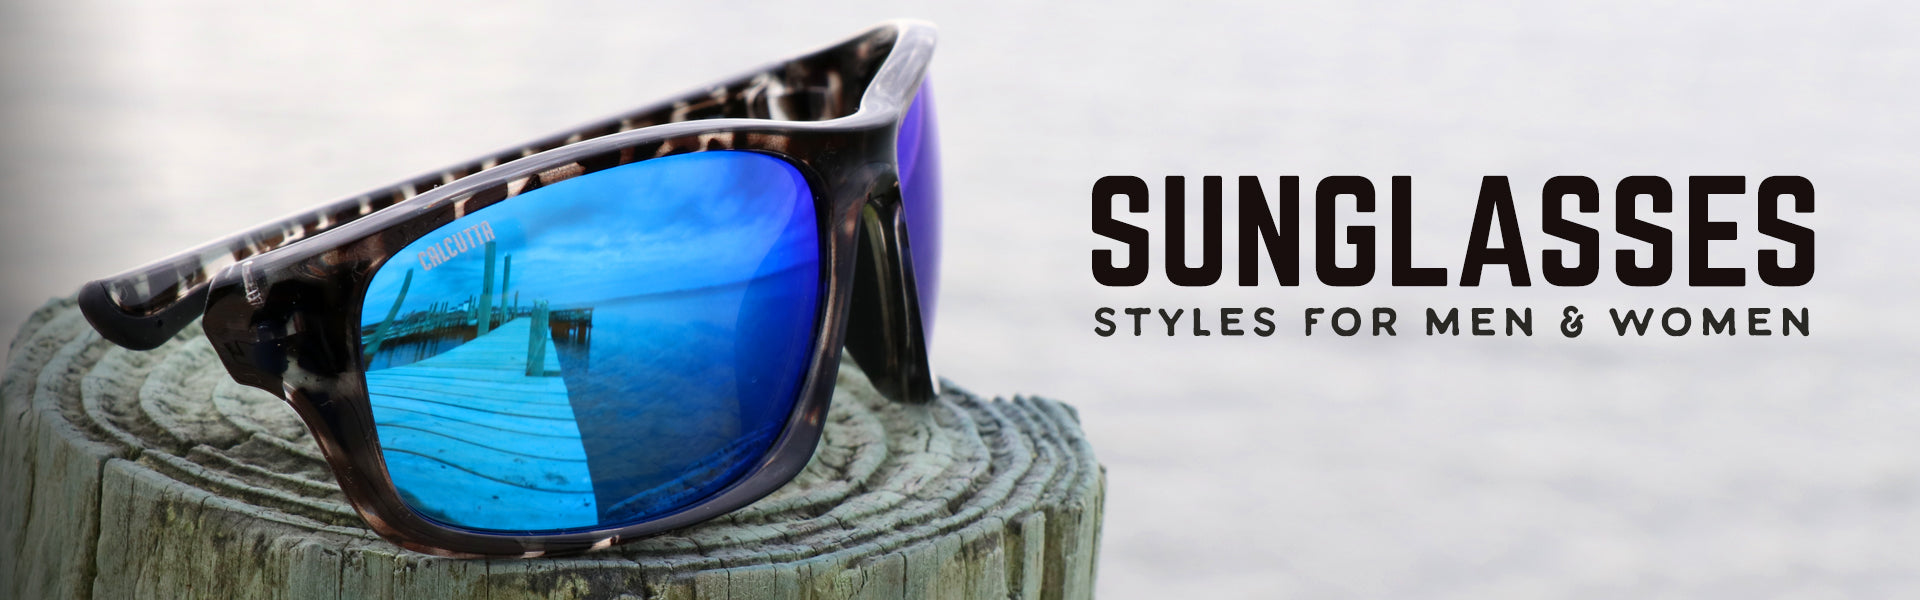 Original Series Sunglasses